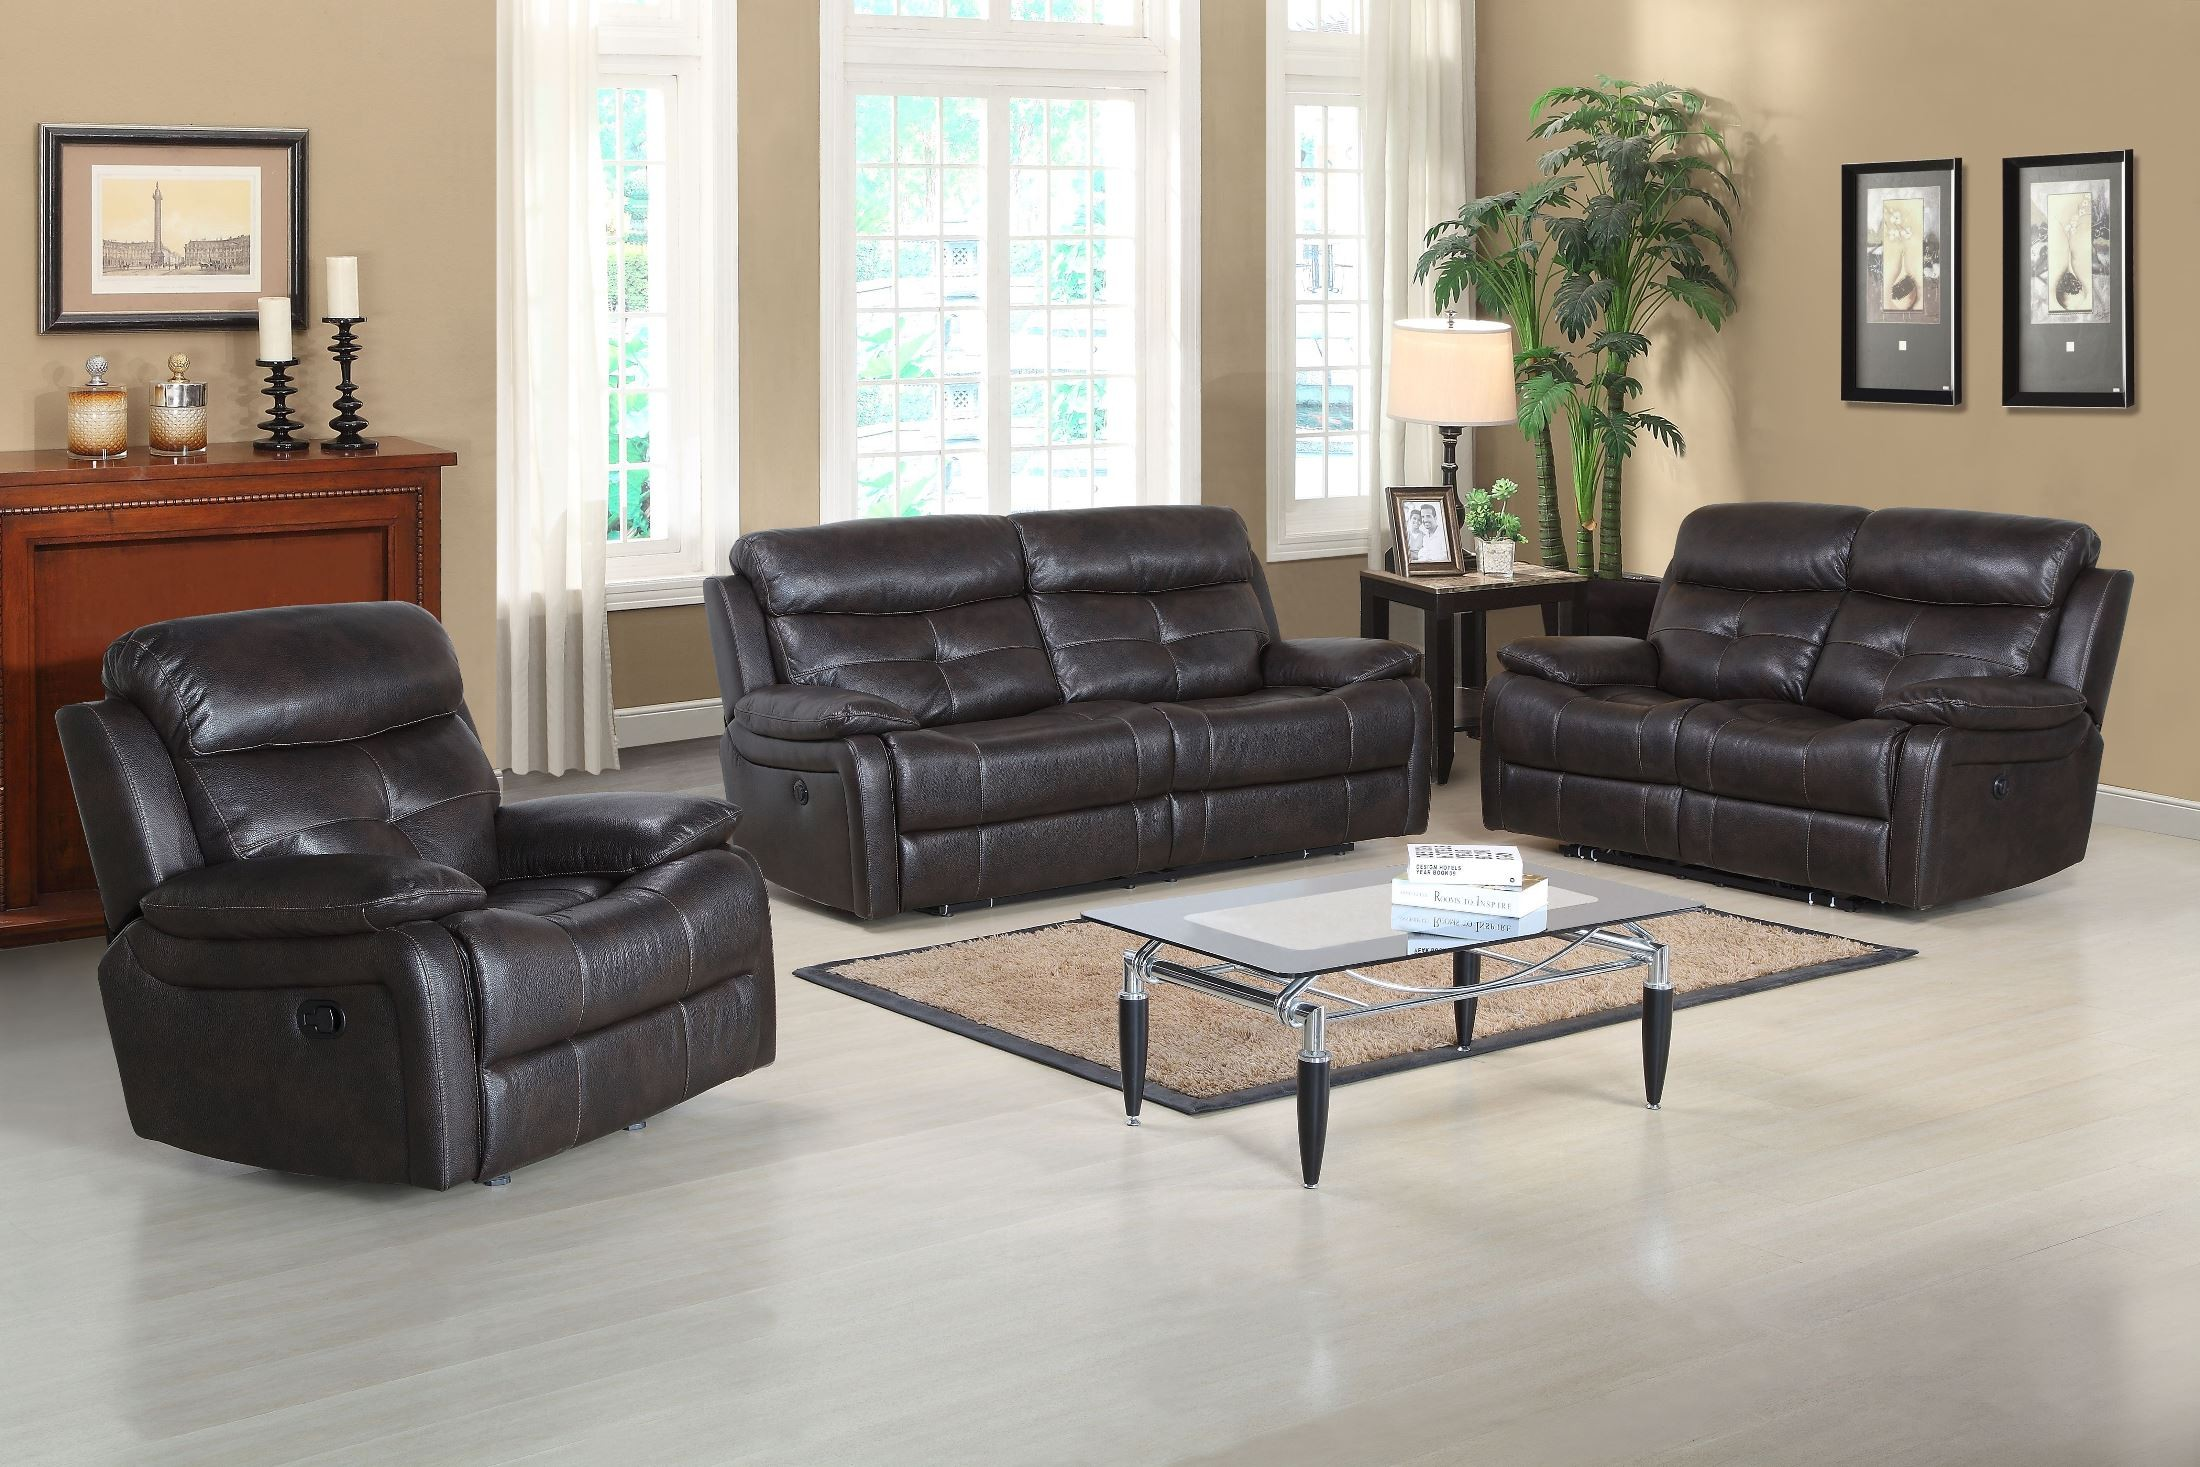 Metro jordan java power reclining living room set from prime resource